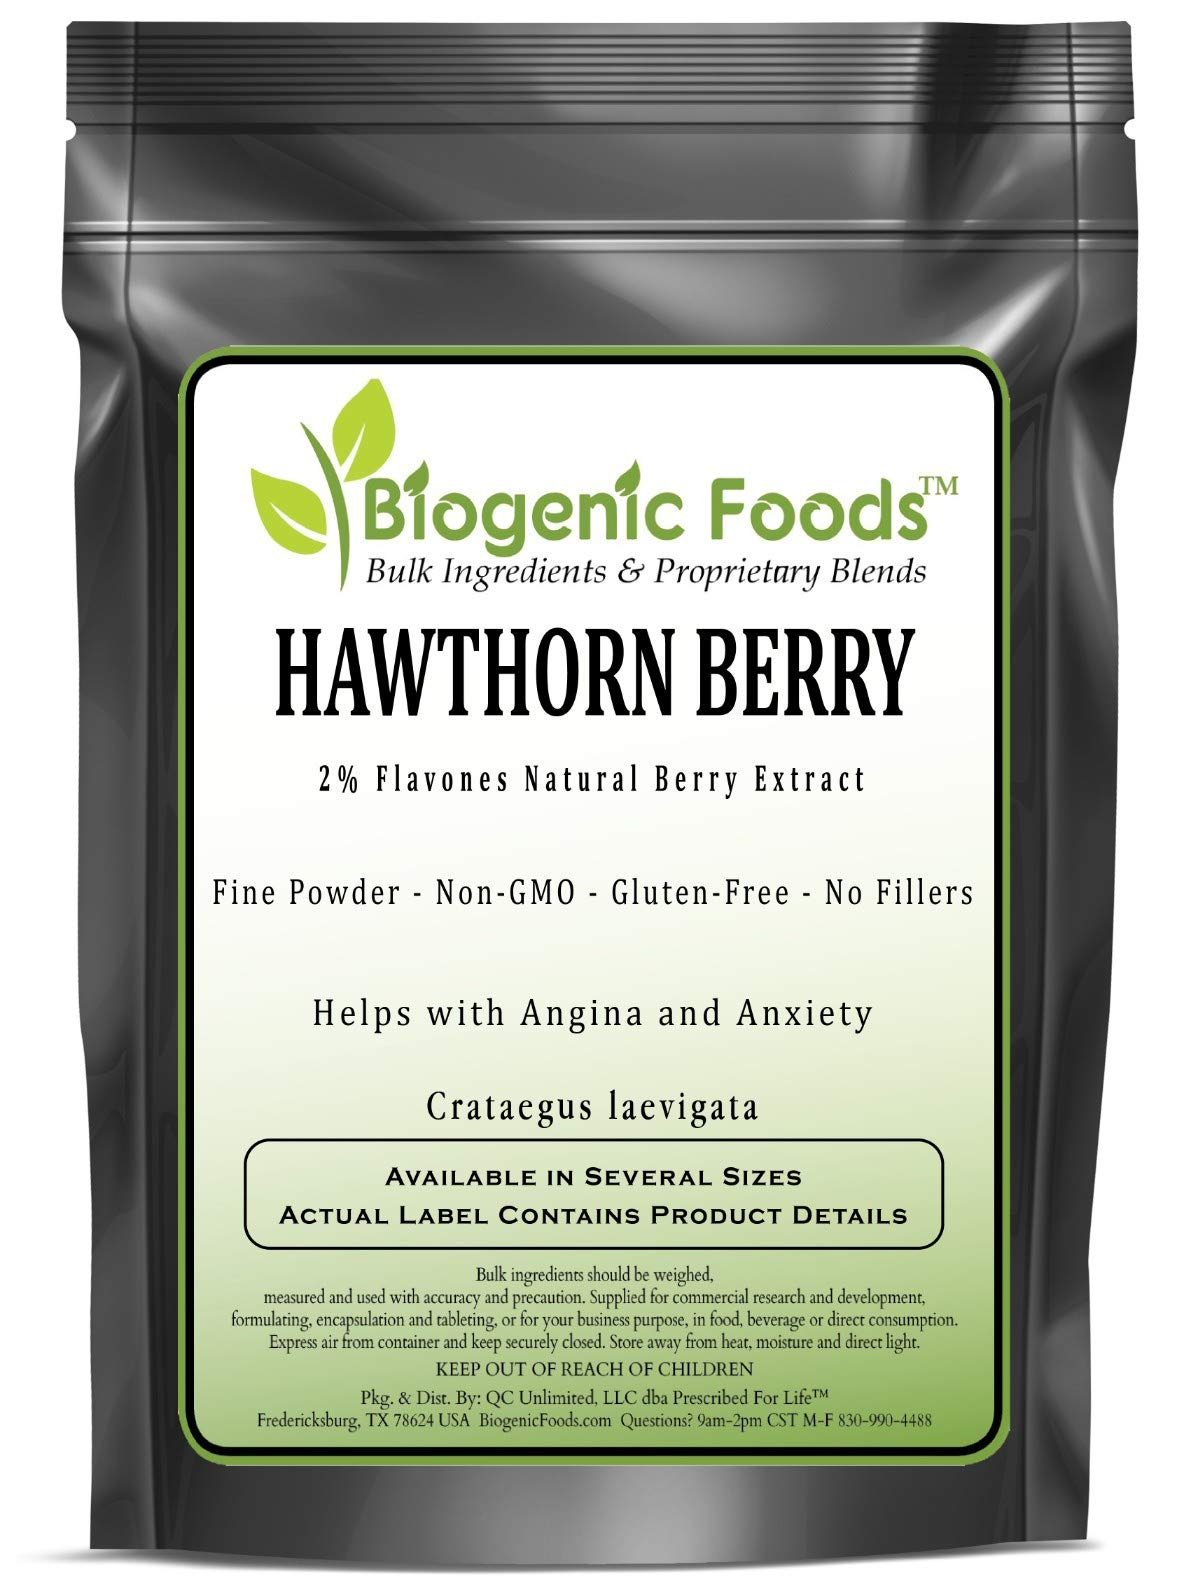 Hawthorn Berry - 2% Flavones Natural Berry Fine Powder Extract (Crataegus laevigata), 10 kg